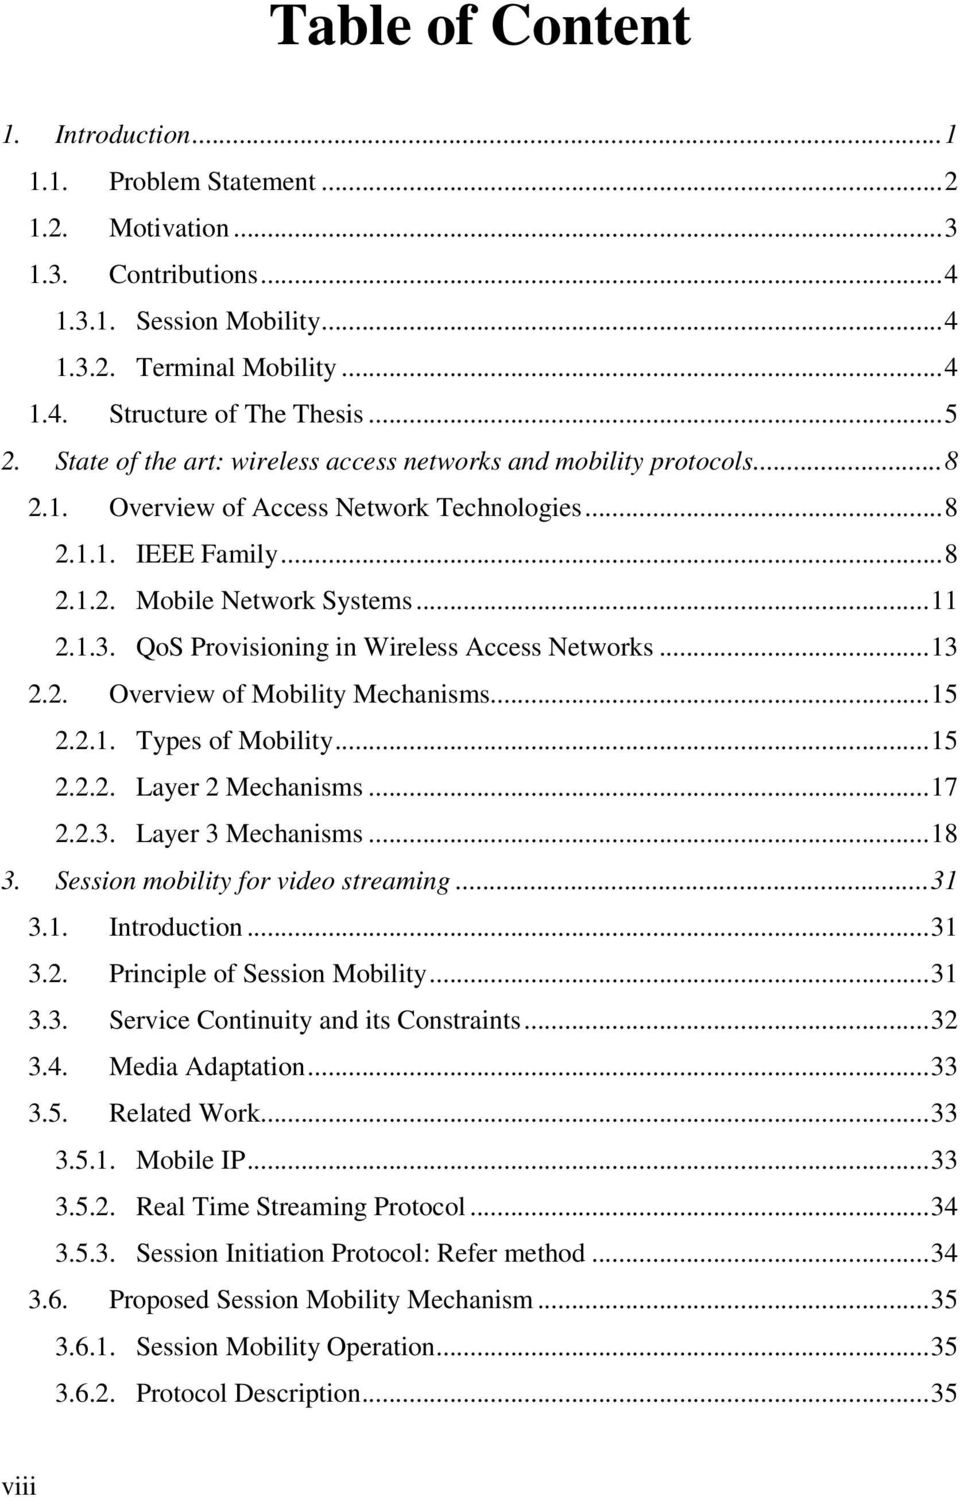 QoS Provisioning in Wireless Access Networks...13 2.2. Overview of Mobility Mechanisms...15 2.2.1. Types of Mobility...15 2.2.2. Layer 2 Mechanisms...17 2.2.3. Layer 3 Mechanisms...18 3.